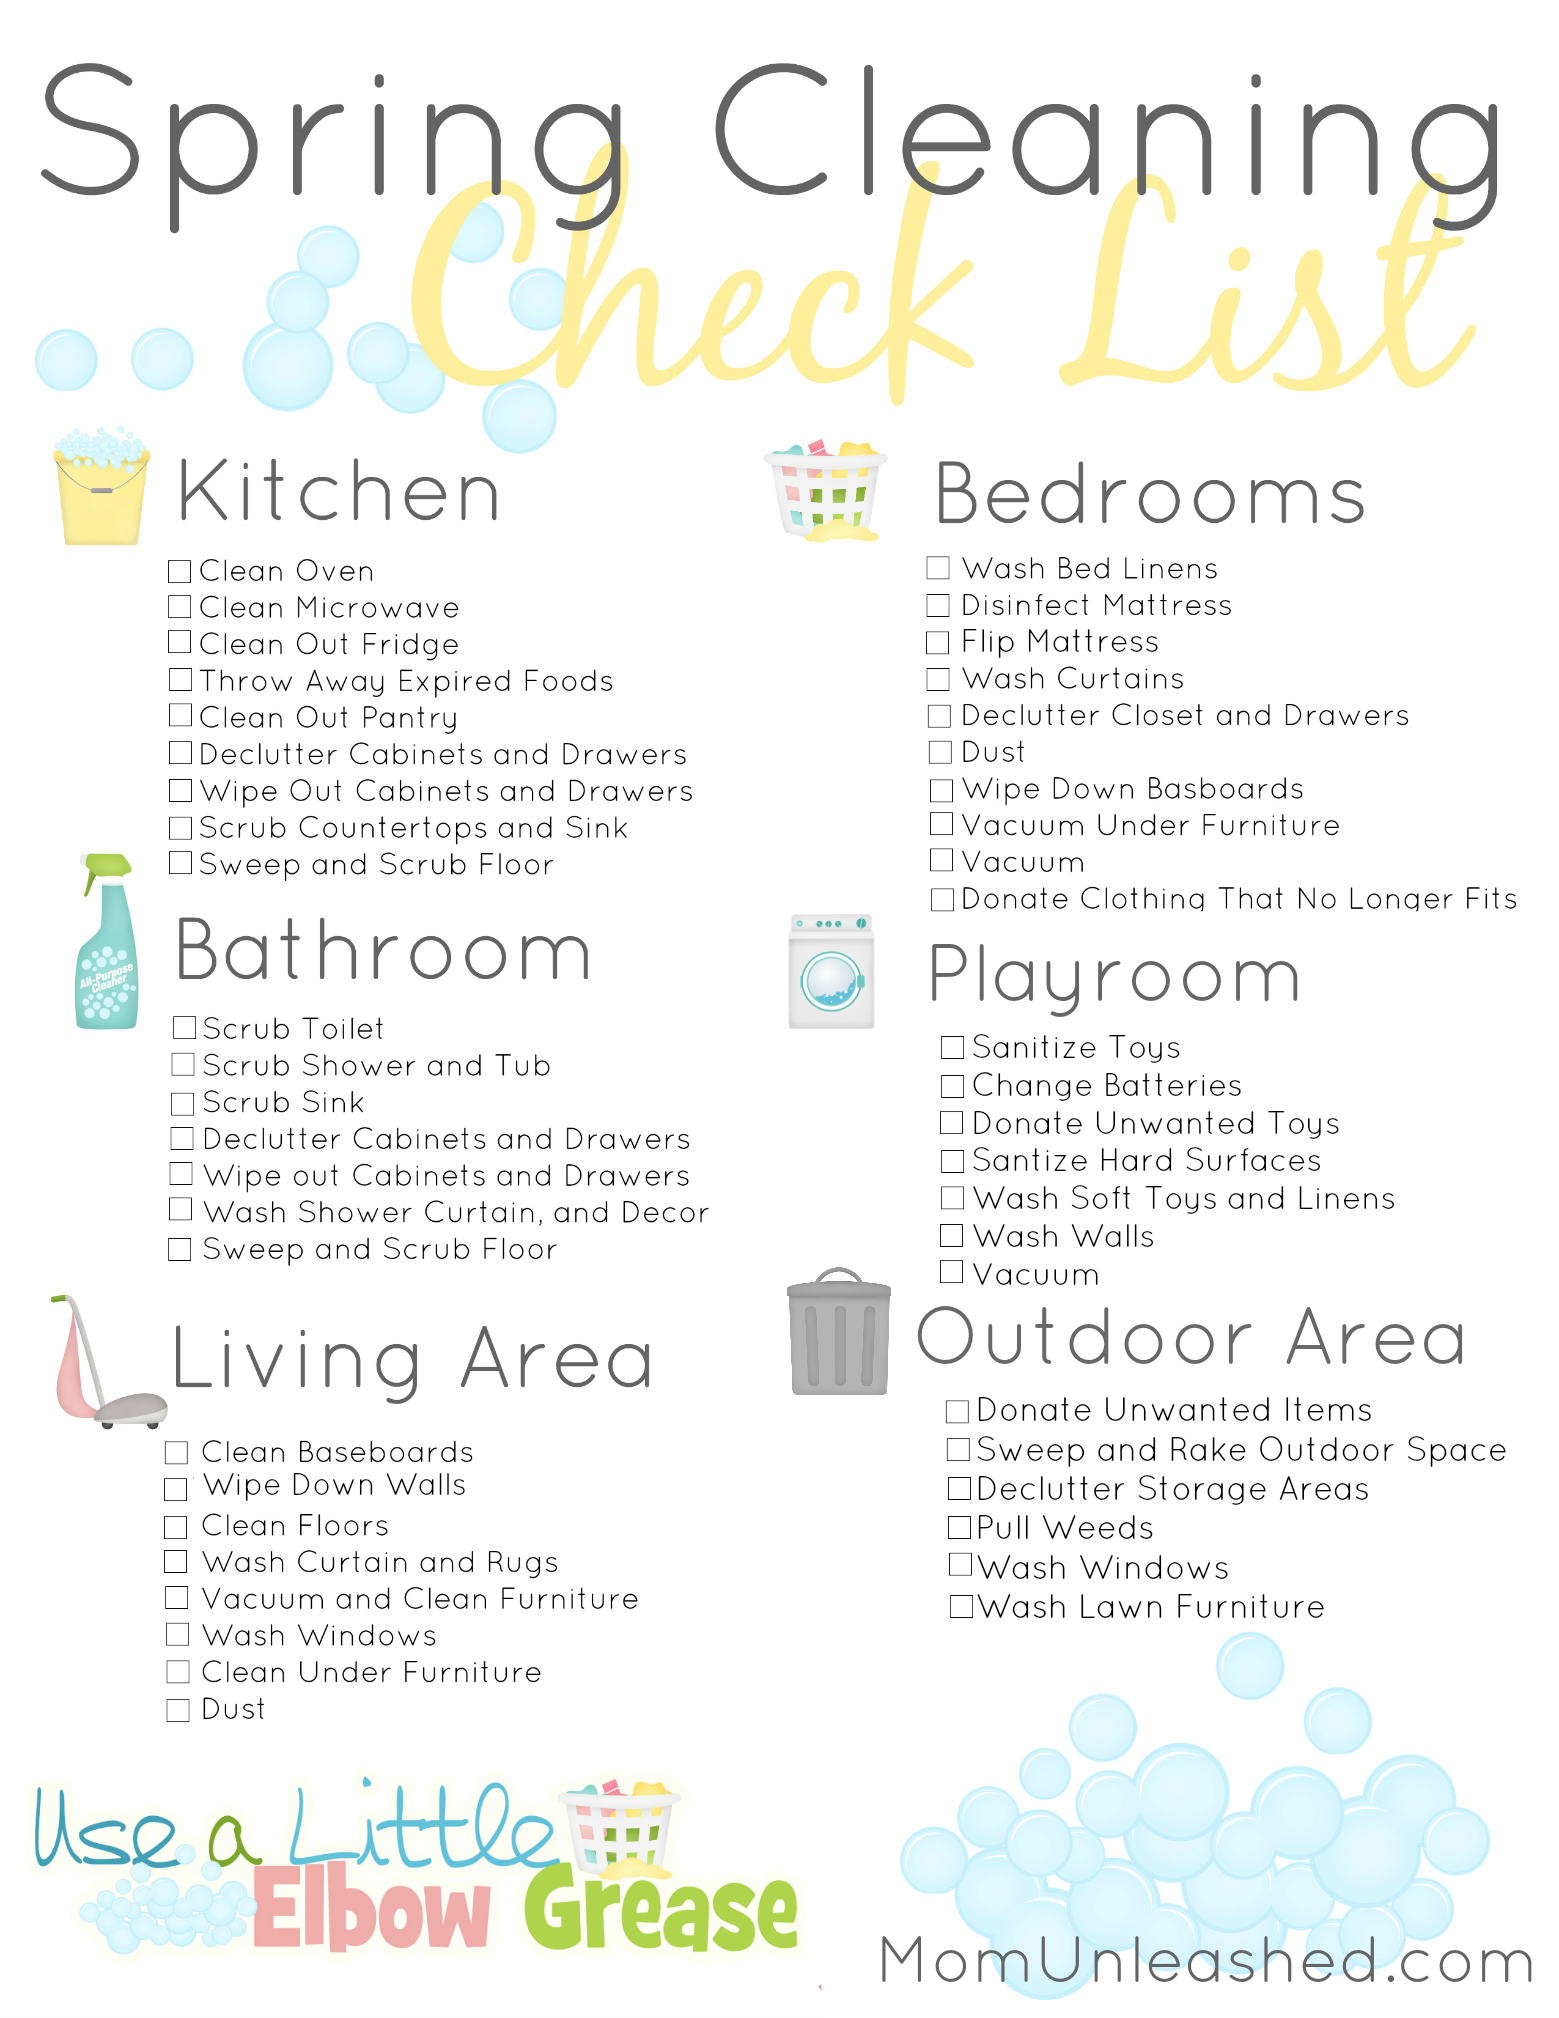 graphic relating to Cleaning Supplies List Printable titled Printable Spring Cleansing Listing Uncomplicated Cleansing Strategies